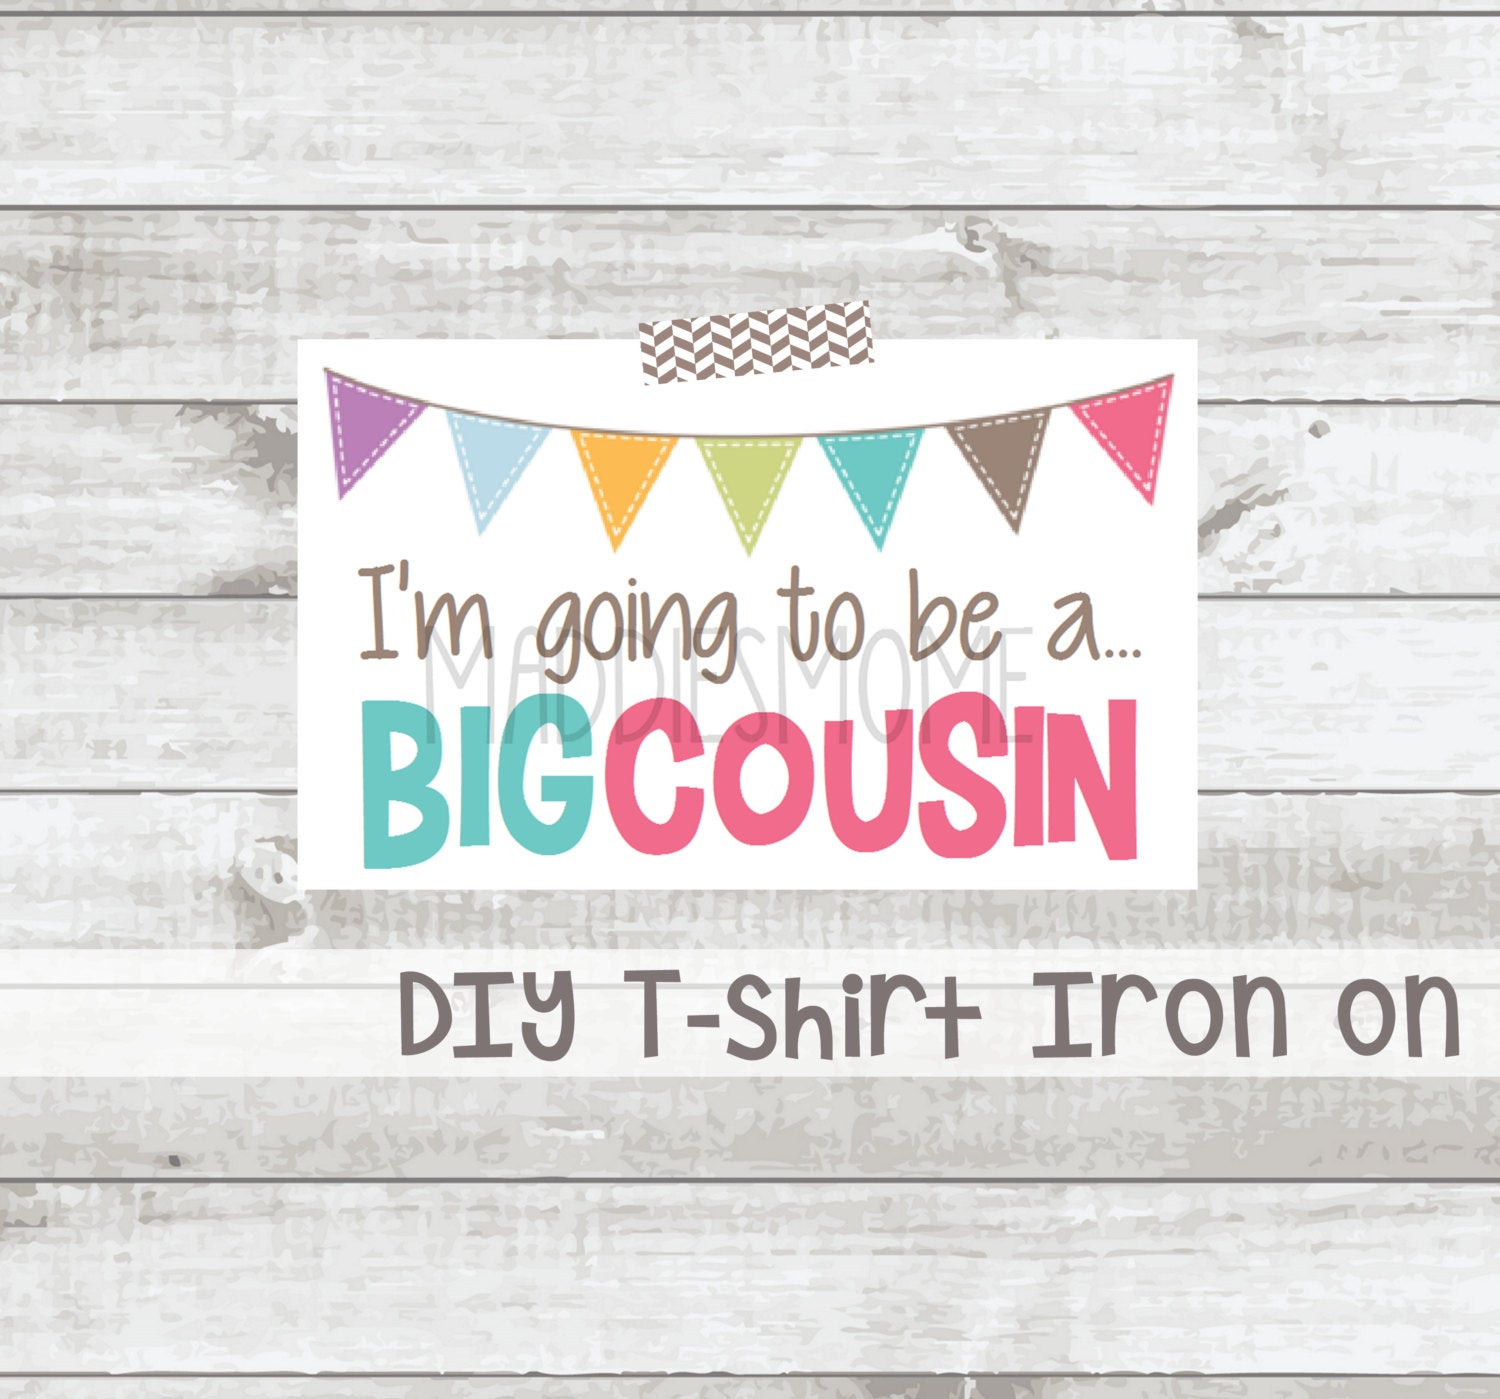 Best ideas about DIY Iron On Transfers . Save or Pin Big Cousin Iron on T shirt Transfer DIY T shirt Decal Big Now.